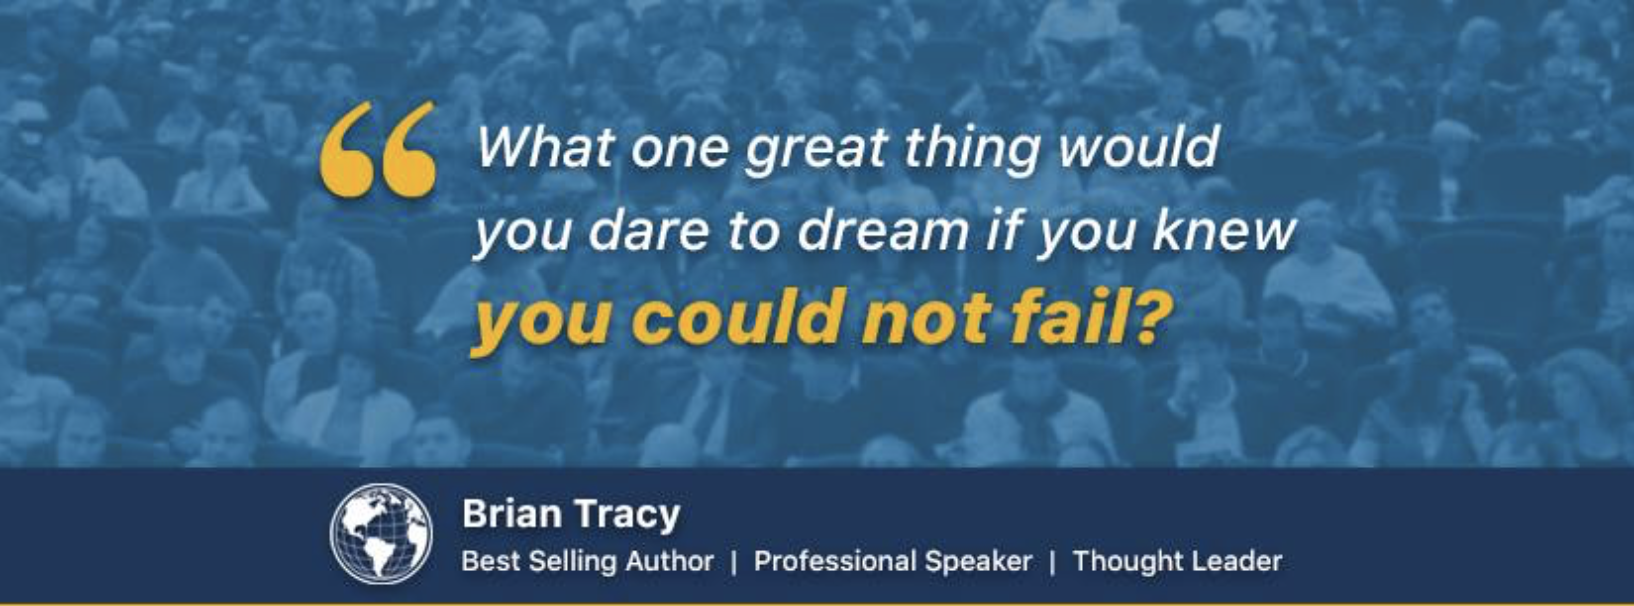 Brian Tracy Facebook Page Image